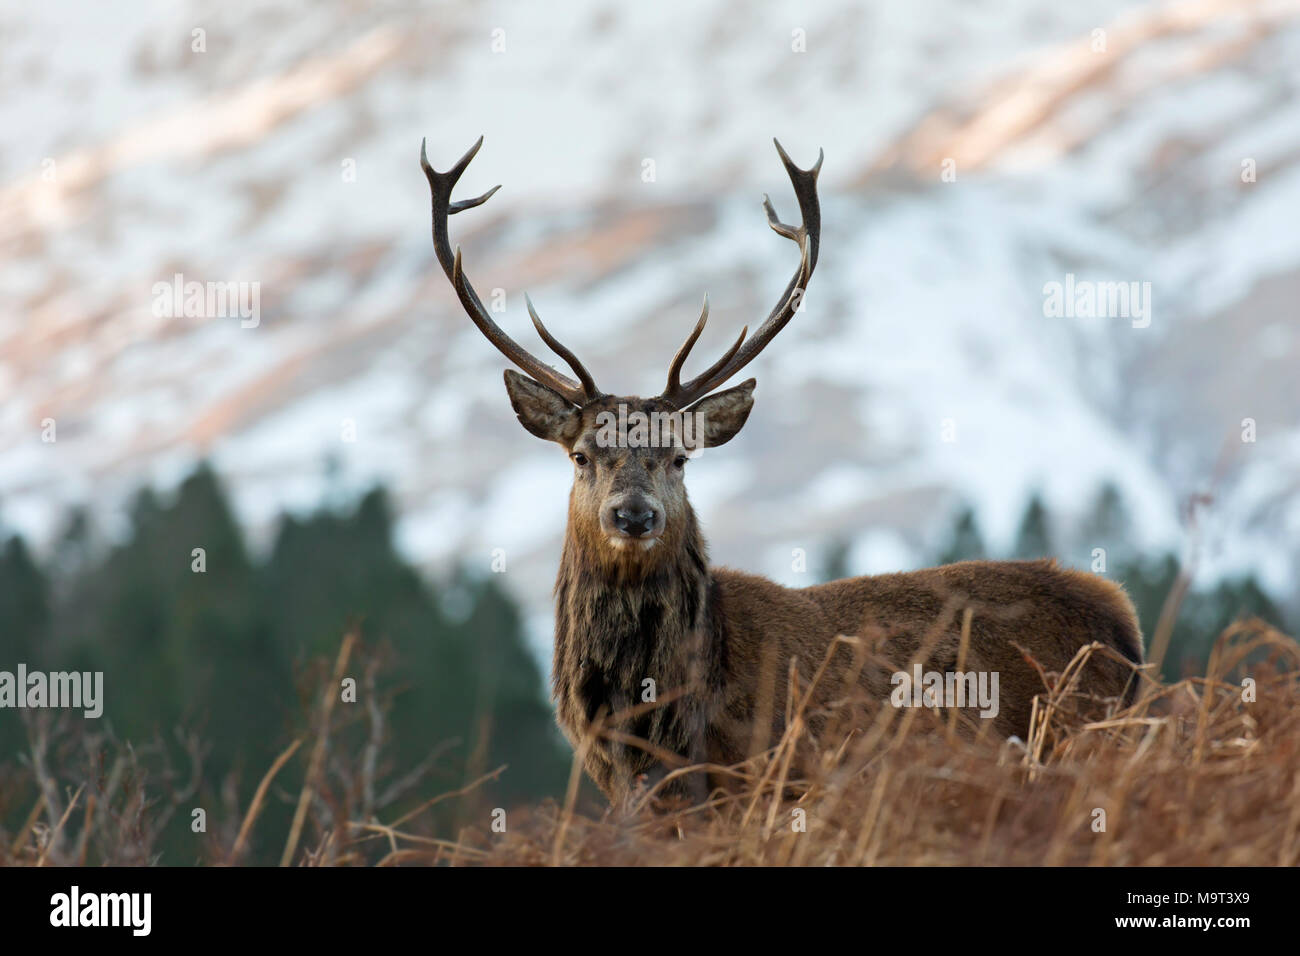 Red deer stag / male (Cervus elaphus) on moorland in the hills in winter in the Scottish Highlands, Scotland, UK Stock Photo